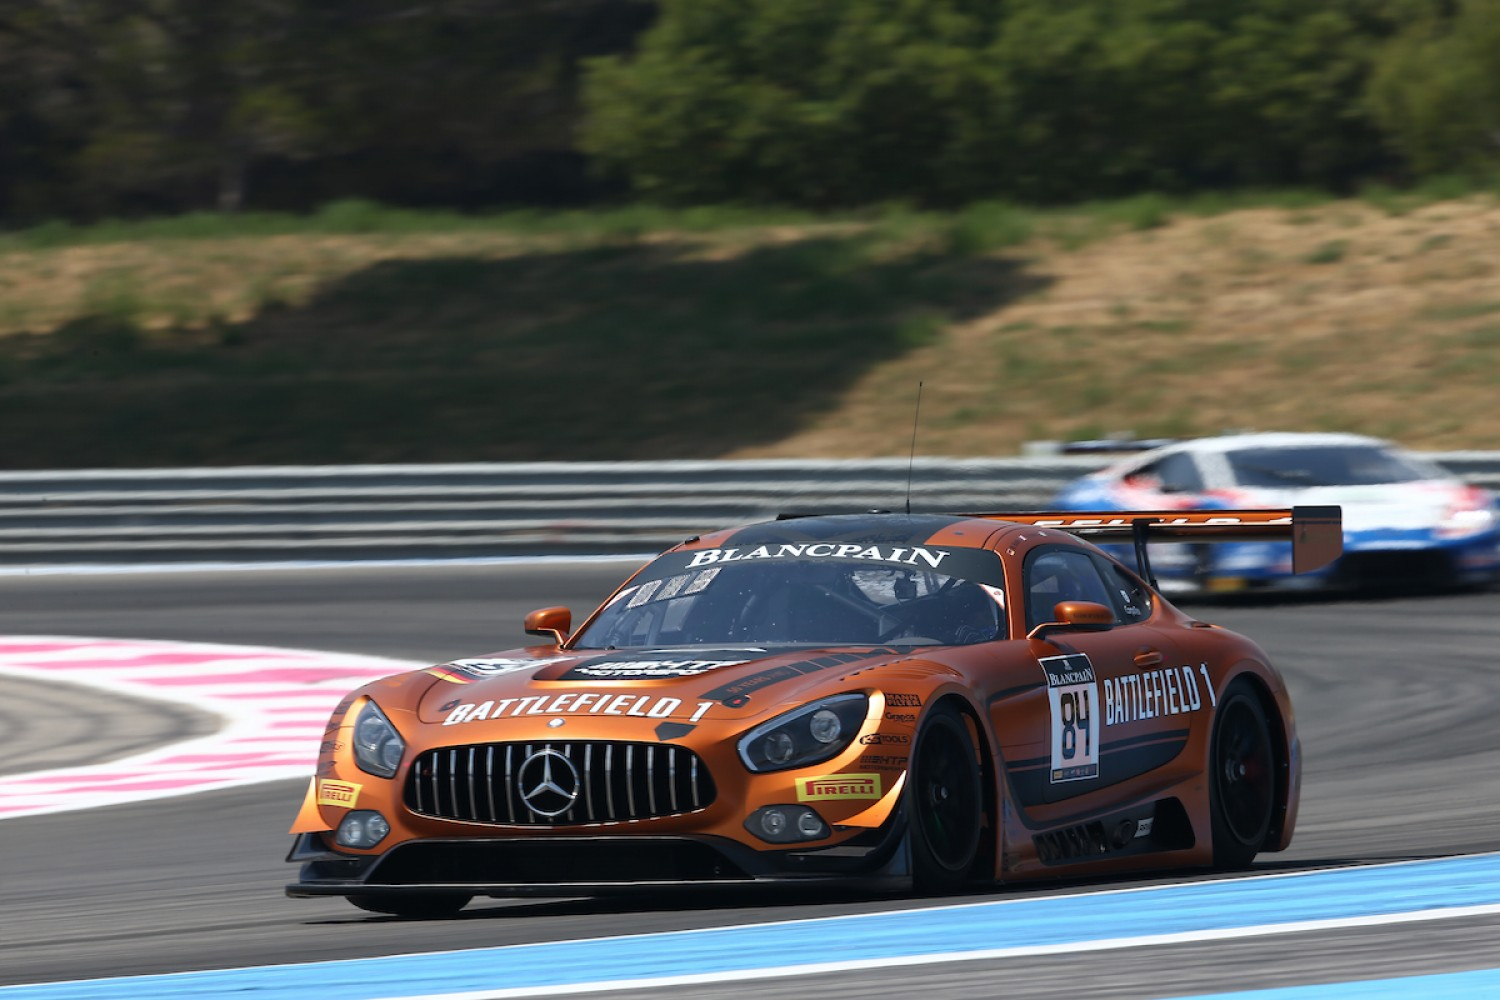 Mercedes-AMG driver Franck Perera quickest in Pre-qualifying